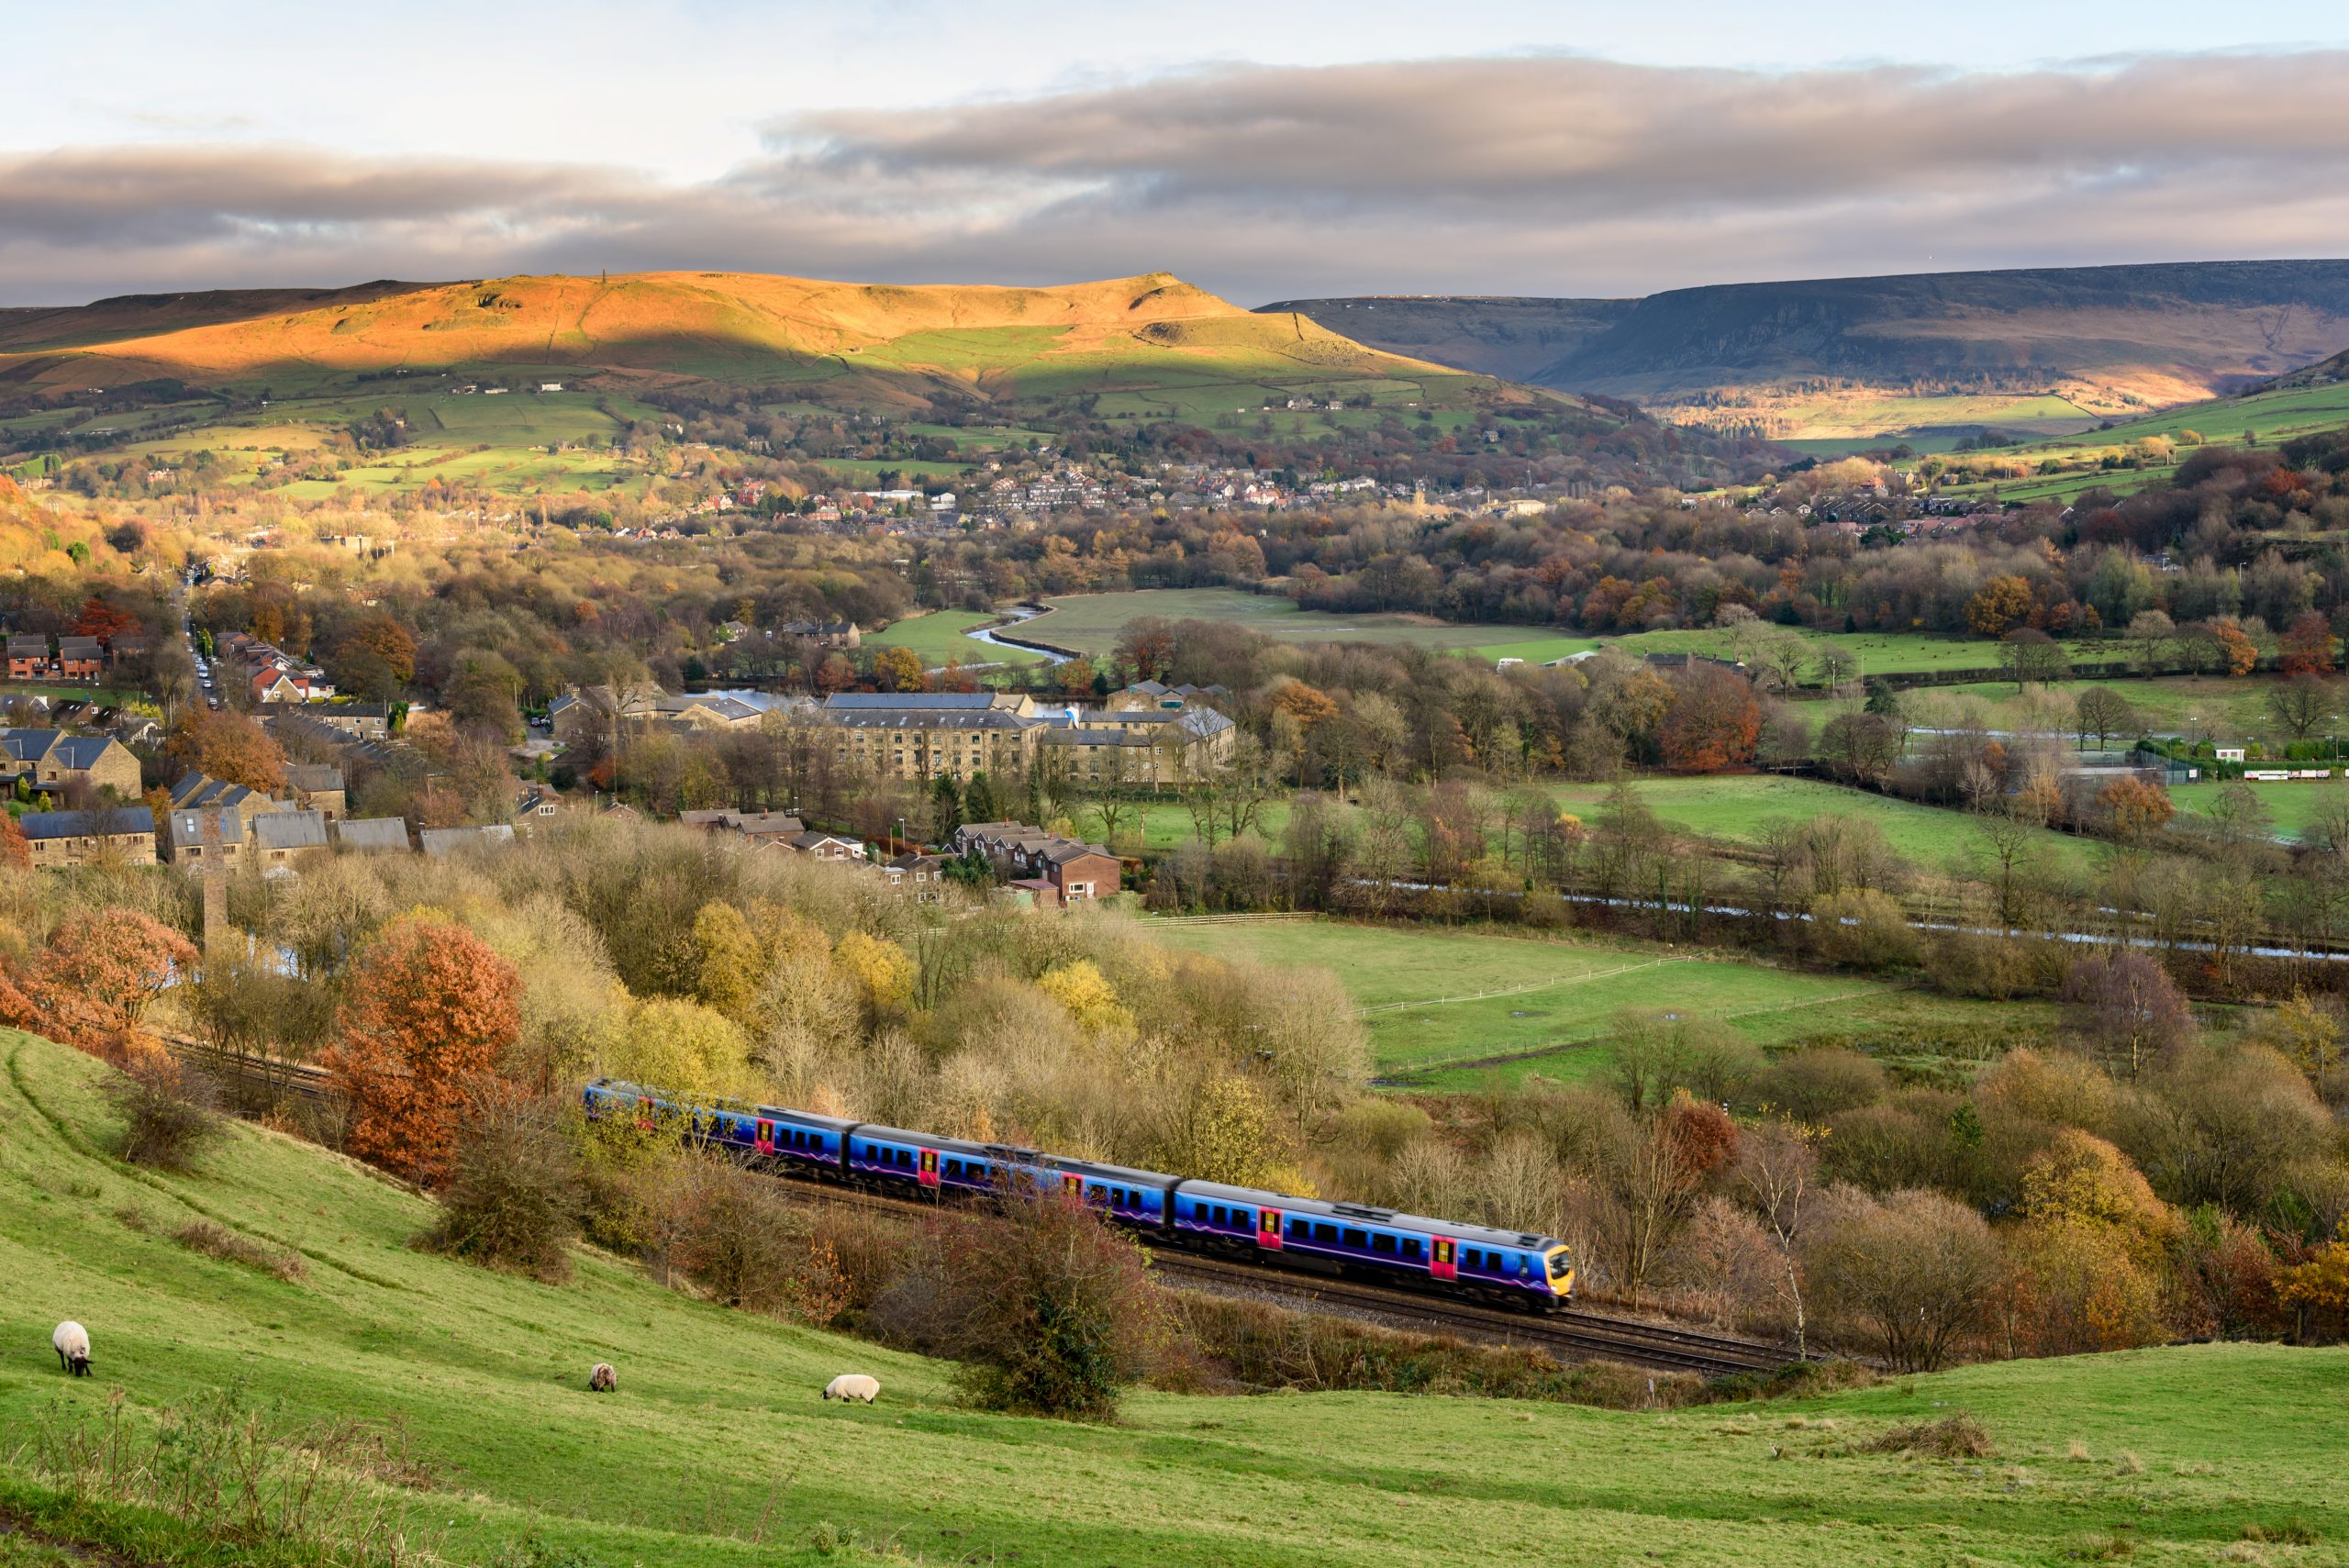 Train travelling through the UK countryside